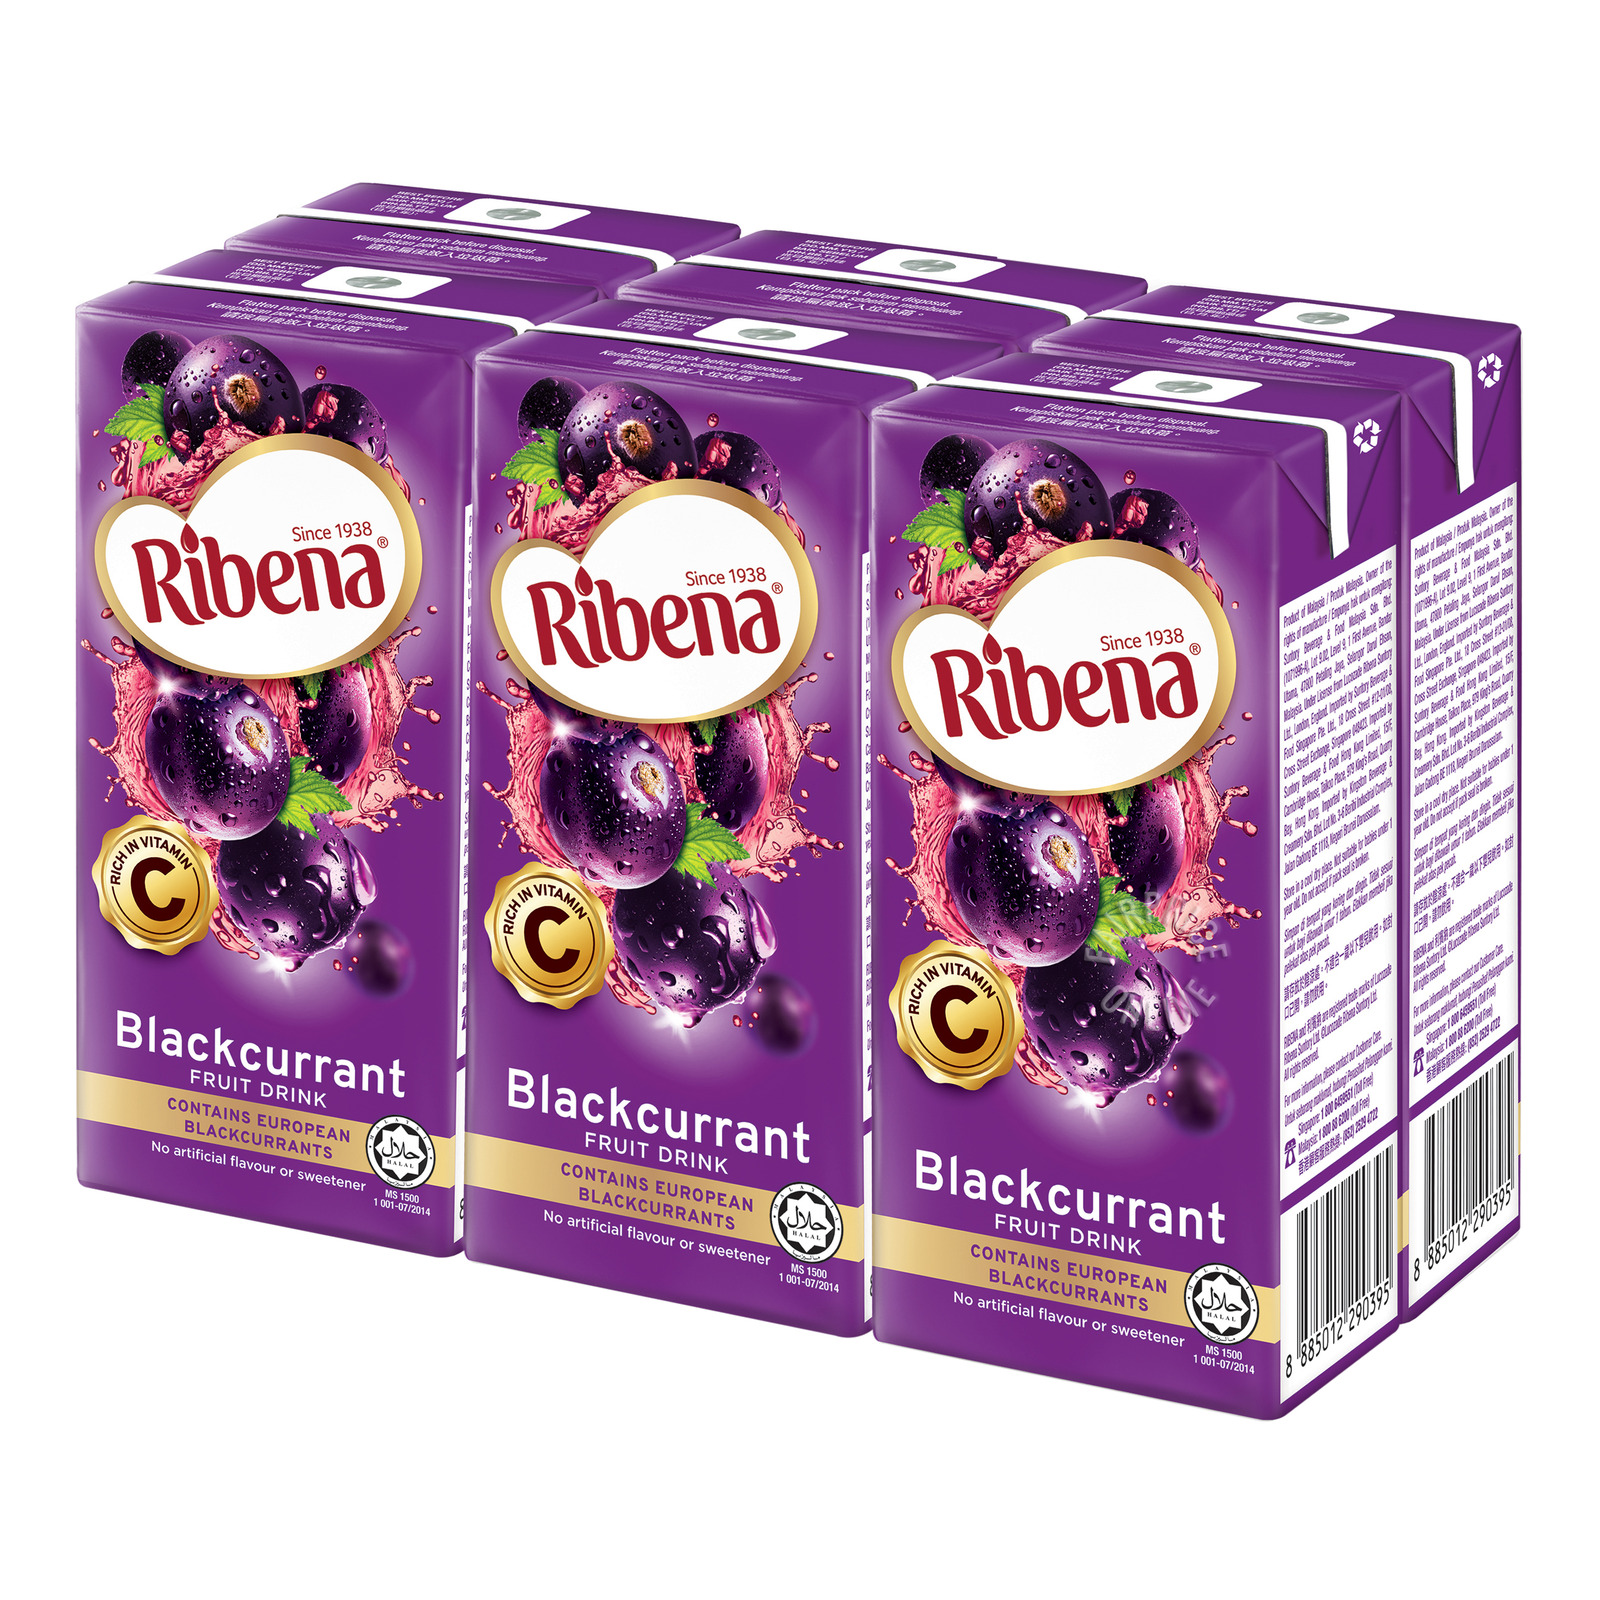 Ribena Blackcurrant Fruit Packet Drink - Regular